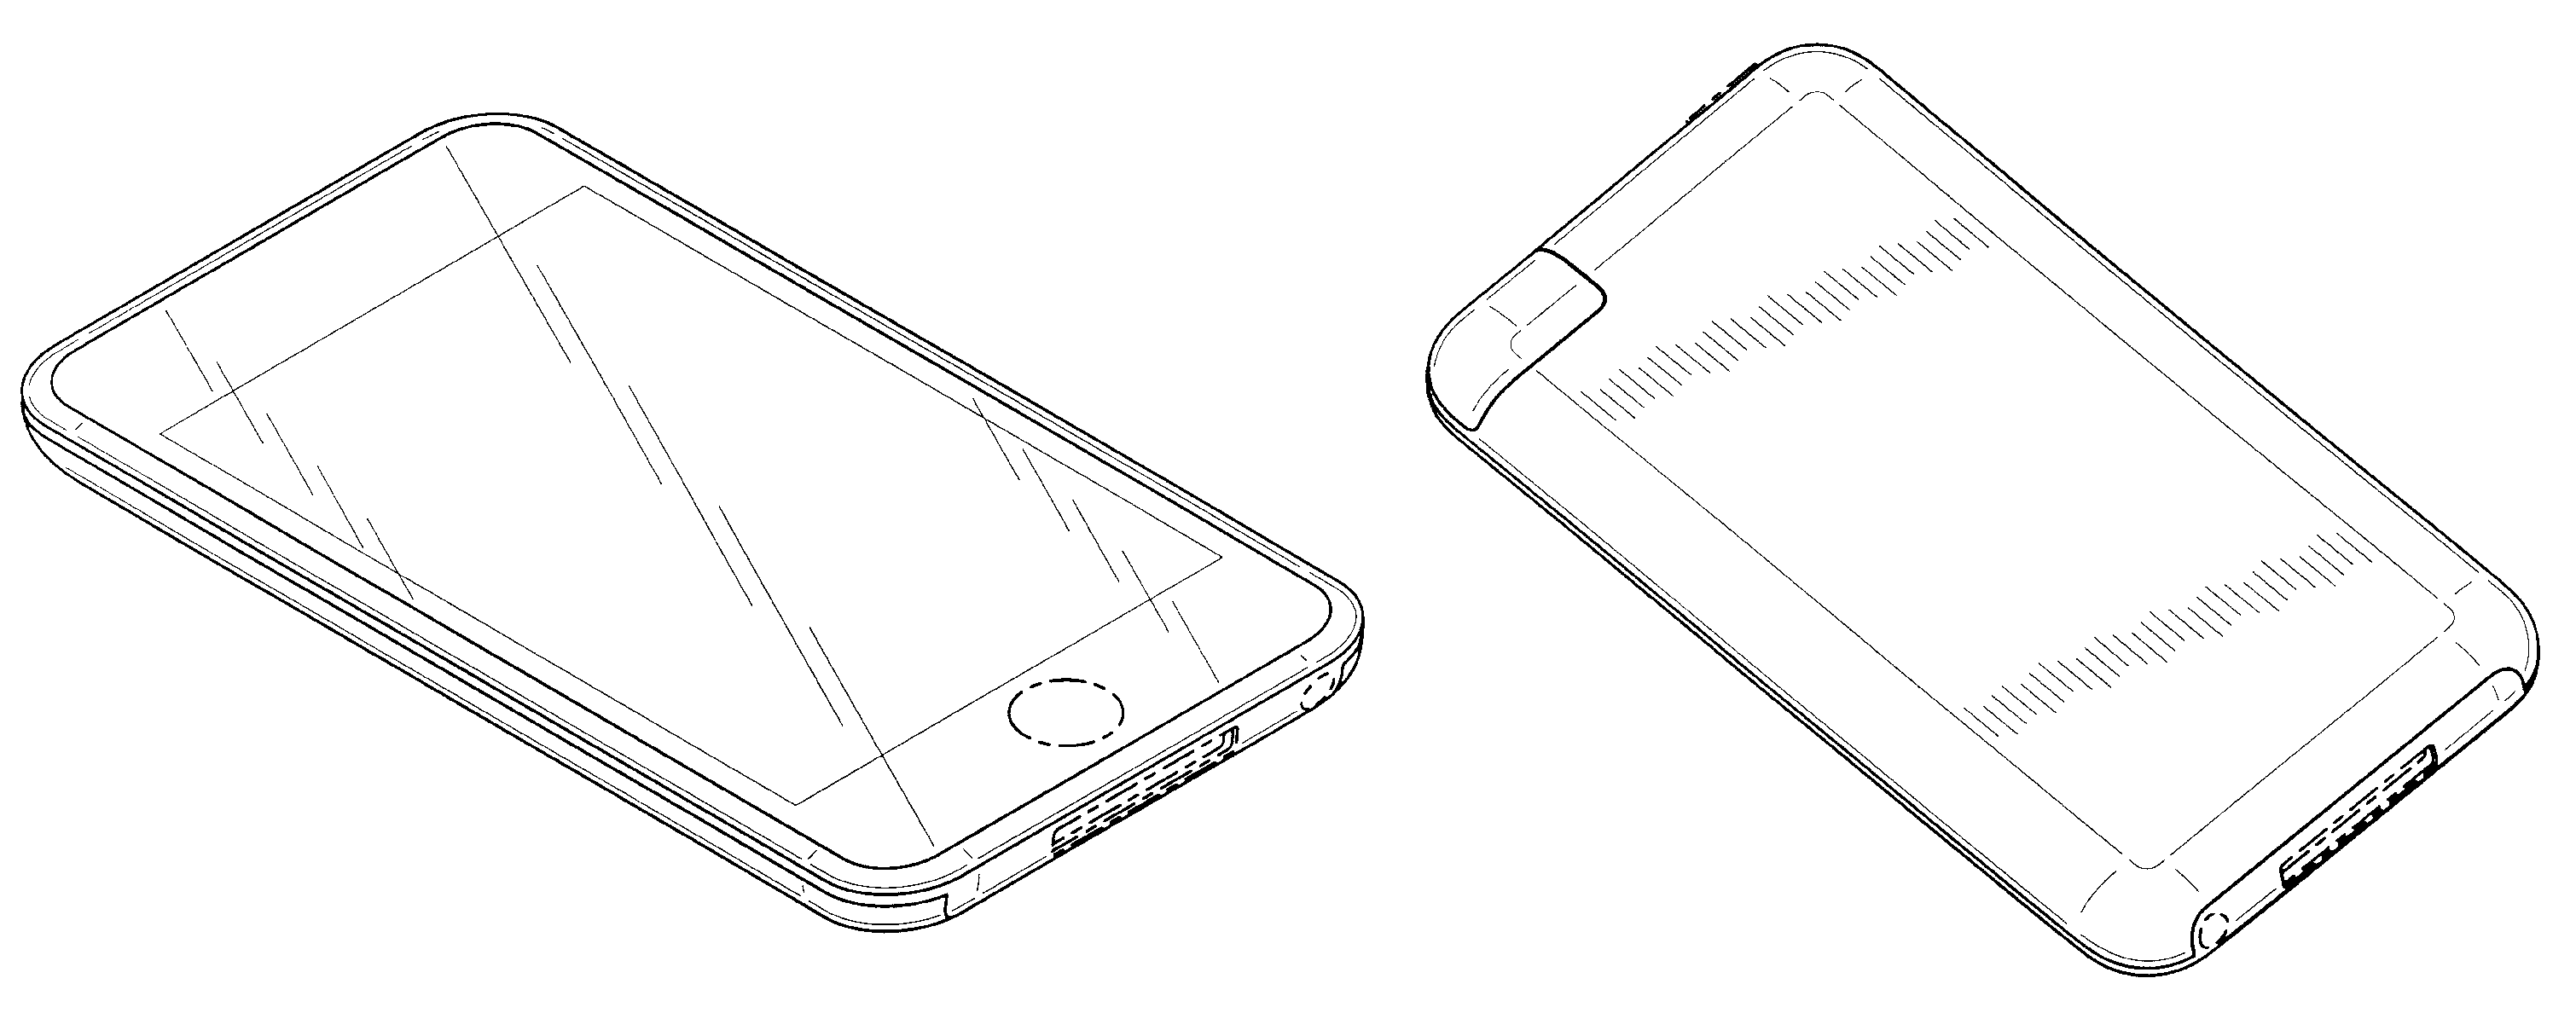 Apple  patent by Steve Jobs from 2010 for electronic device - USD622270